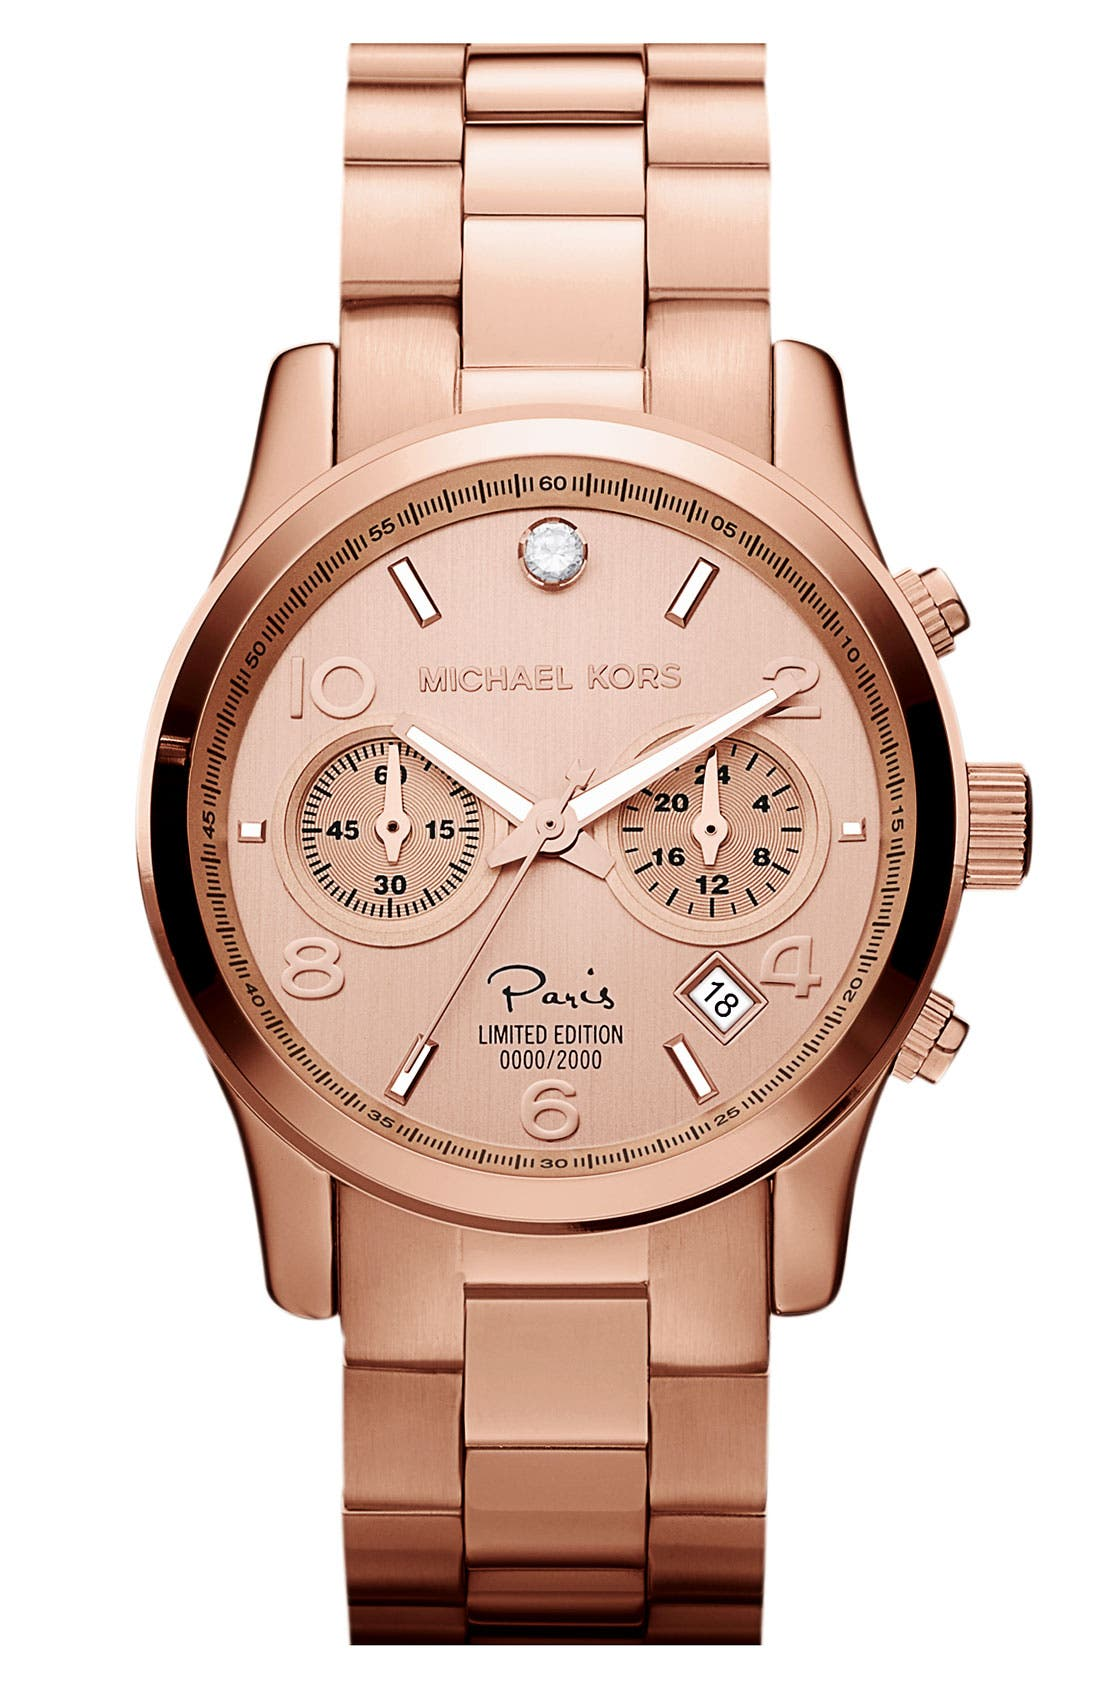 Alternate Image 1 Selected - Michael Kors 'Runway - Paris' Chronograph Watch (Limited Edition)